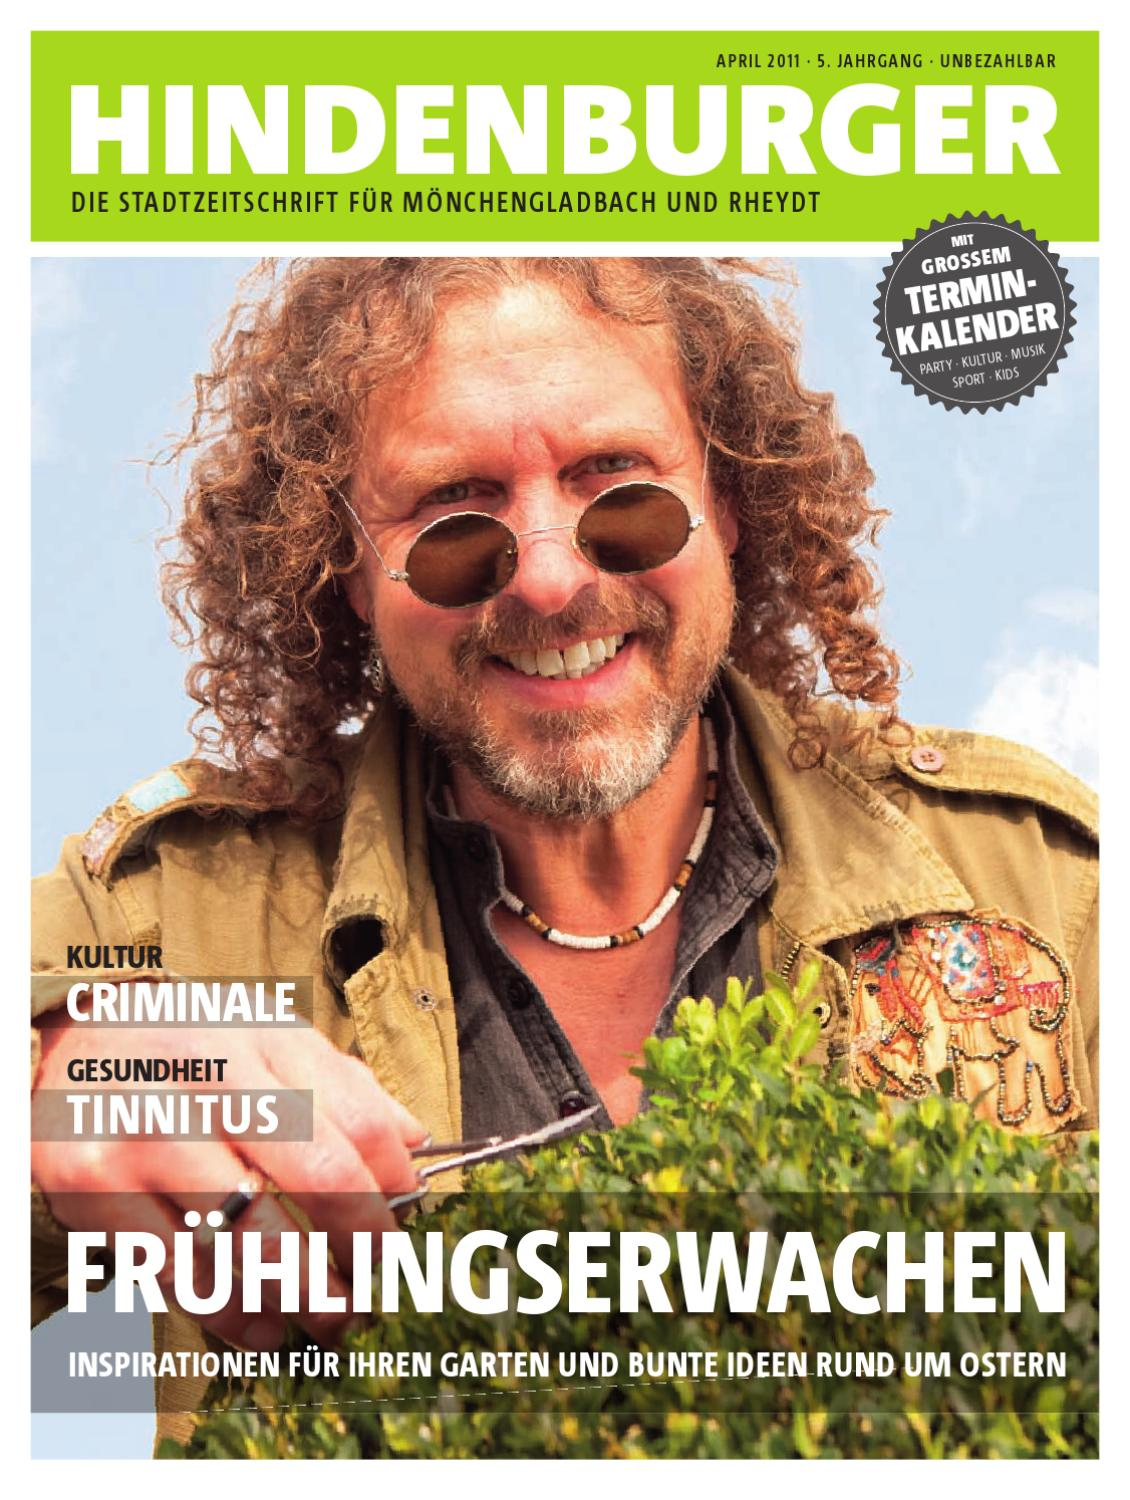 Hindenburger April 2011 By Sascha Broich Issuu